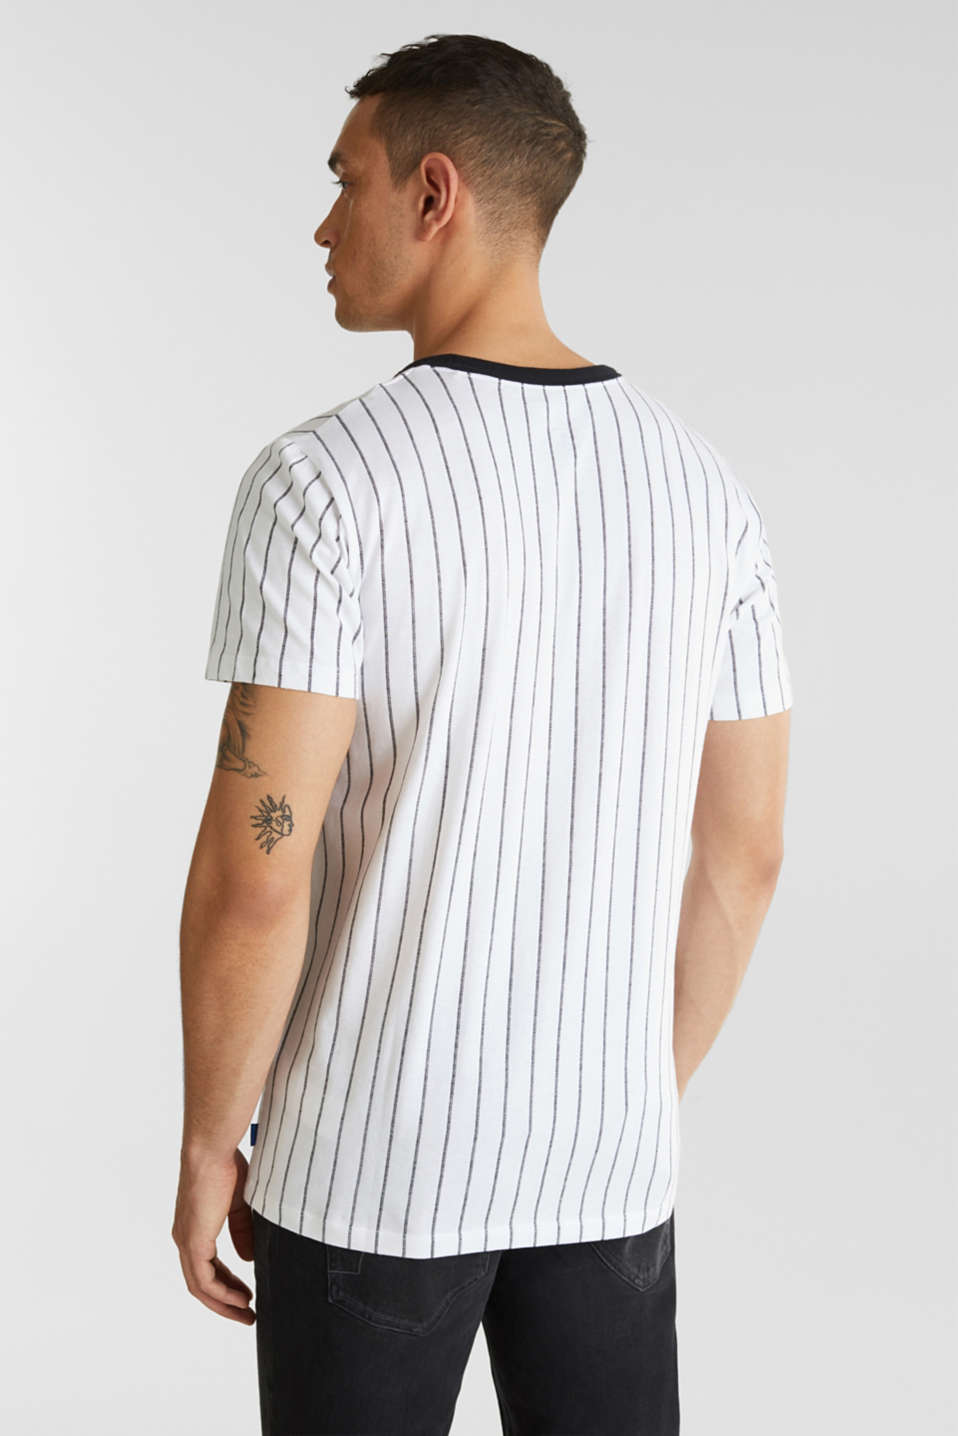 Jersey T-shirt with stripes, 100% cotton, WHITE 3, detail image number 2